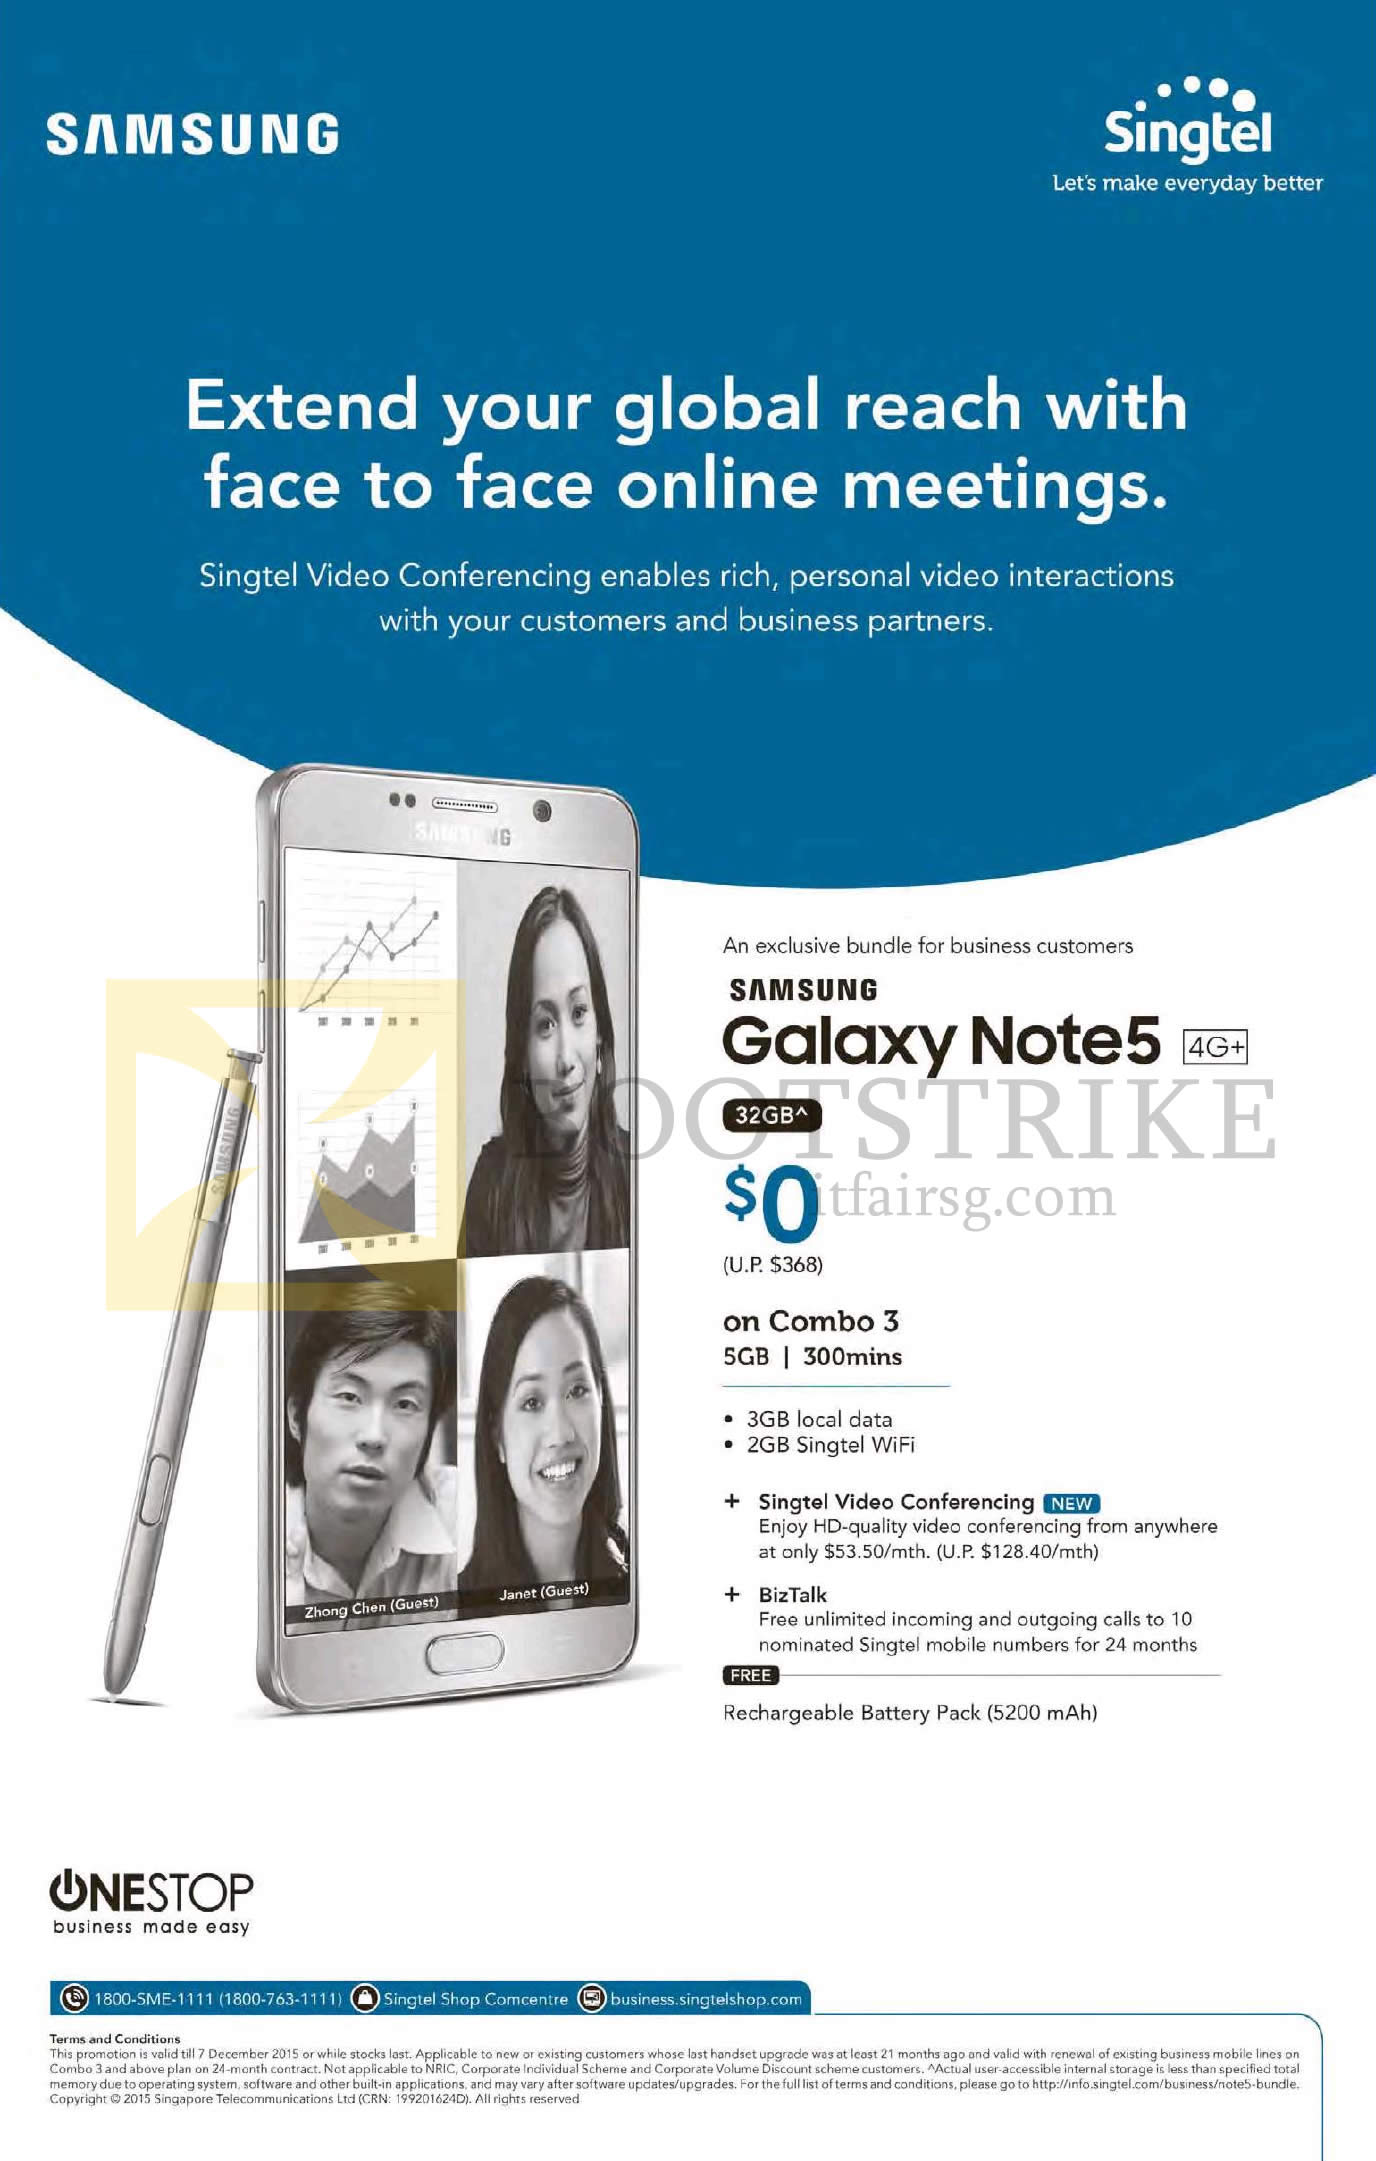 SITEX 2015 price list image brochure of Singtel Business Exclusive Bundle, Samsung Galaxy Note 5 32GB